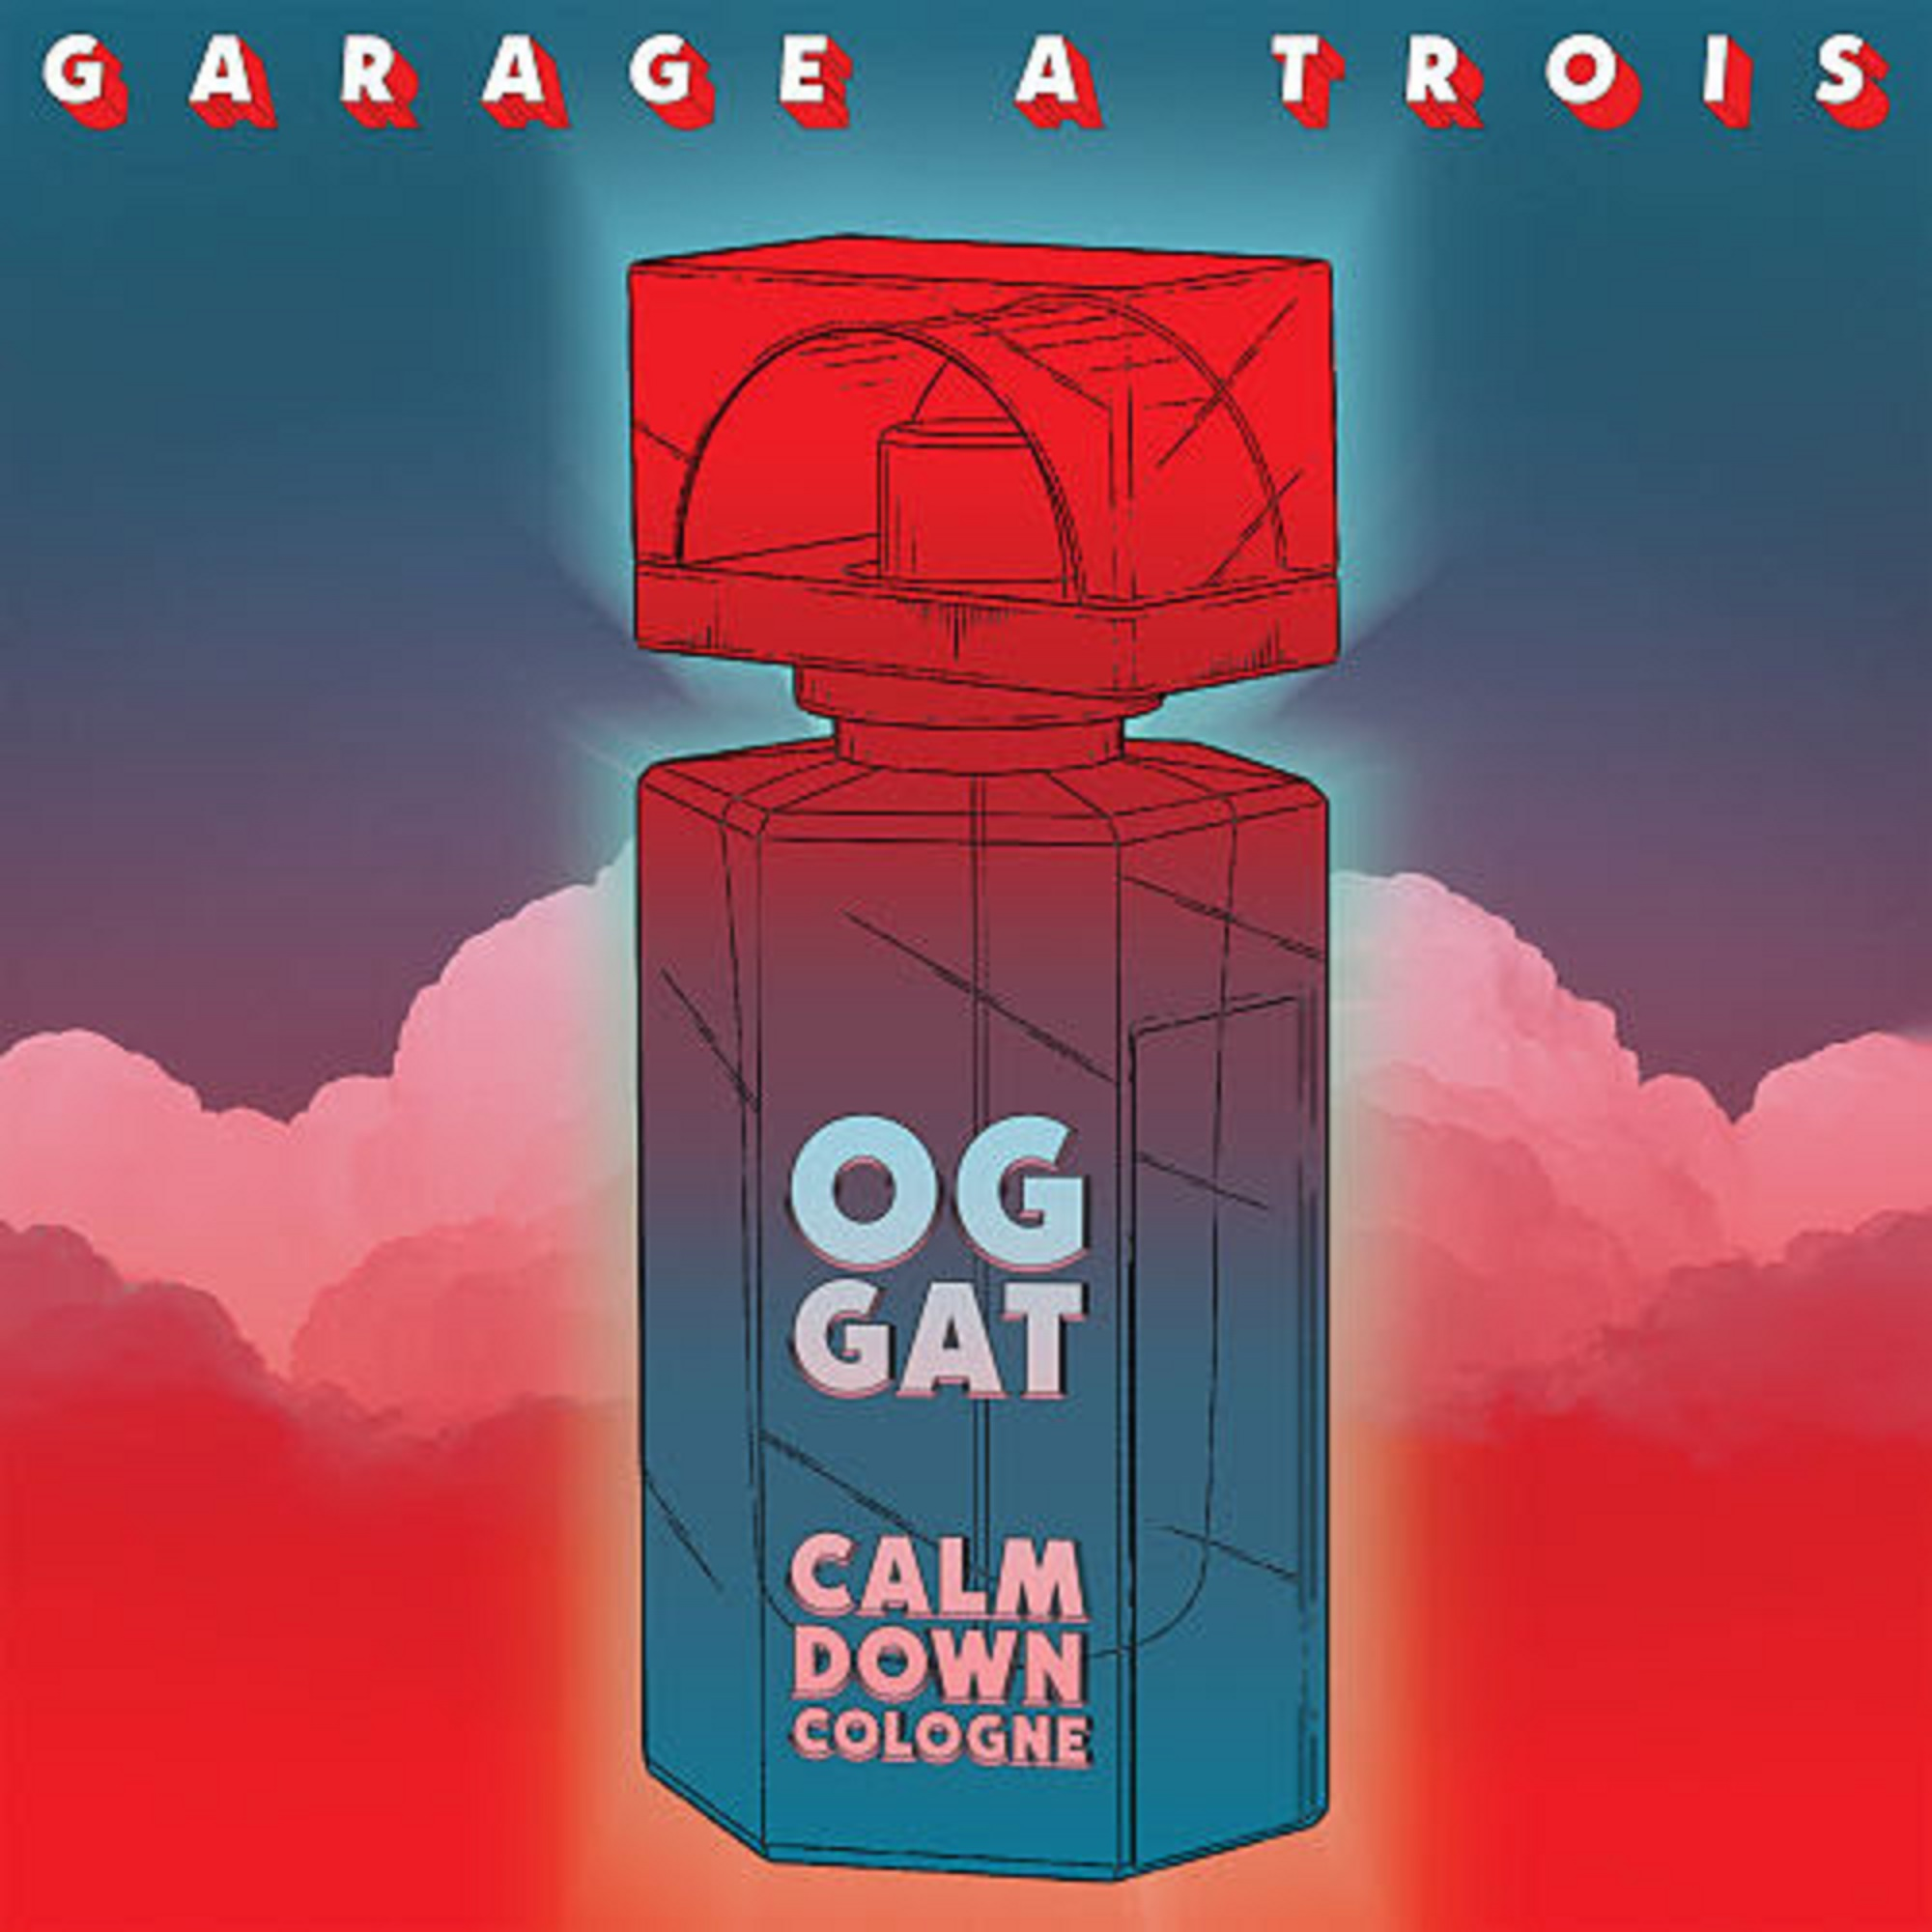 Garage A Trois Announce 'Calm Down Cologne'